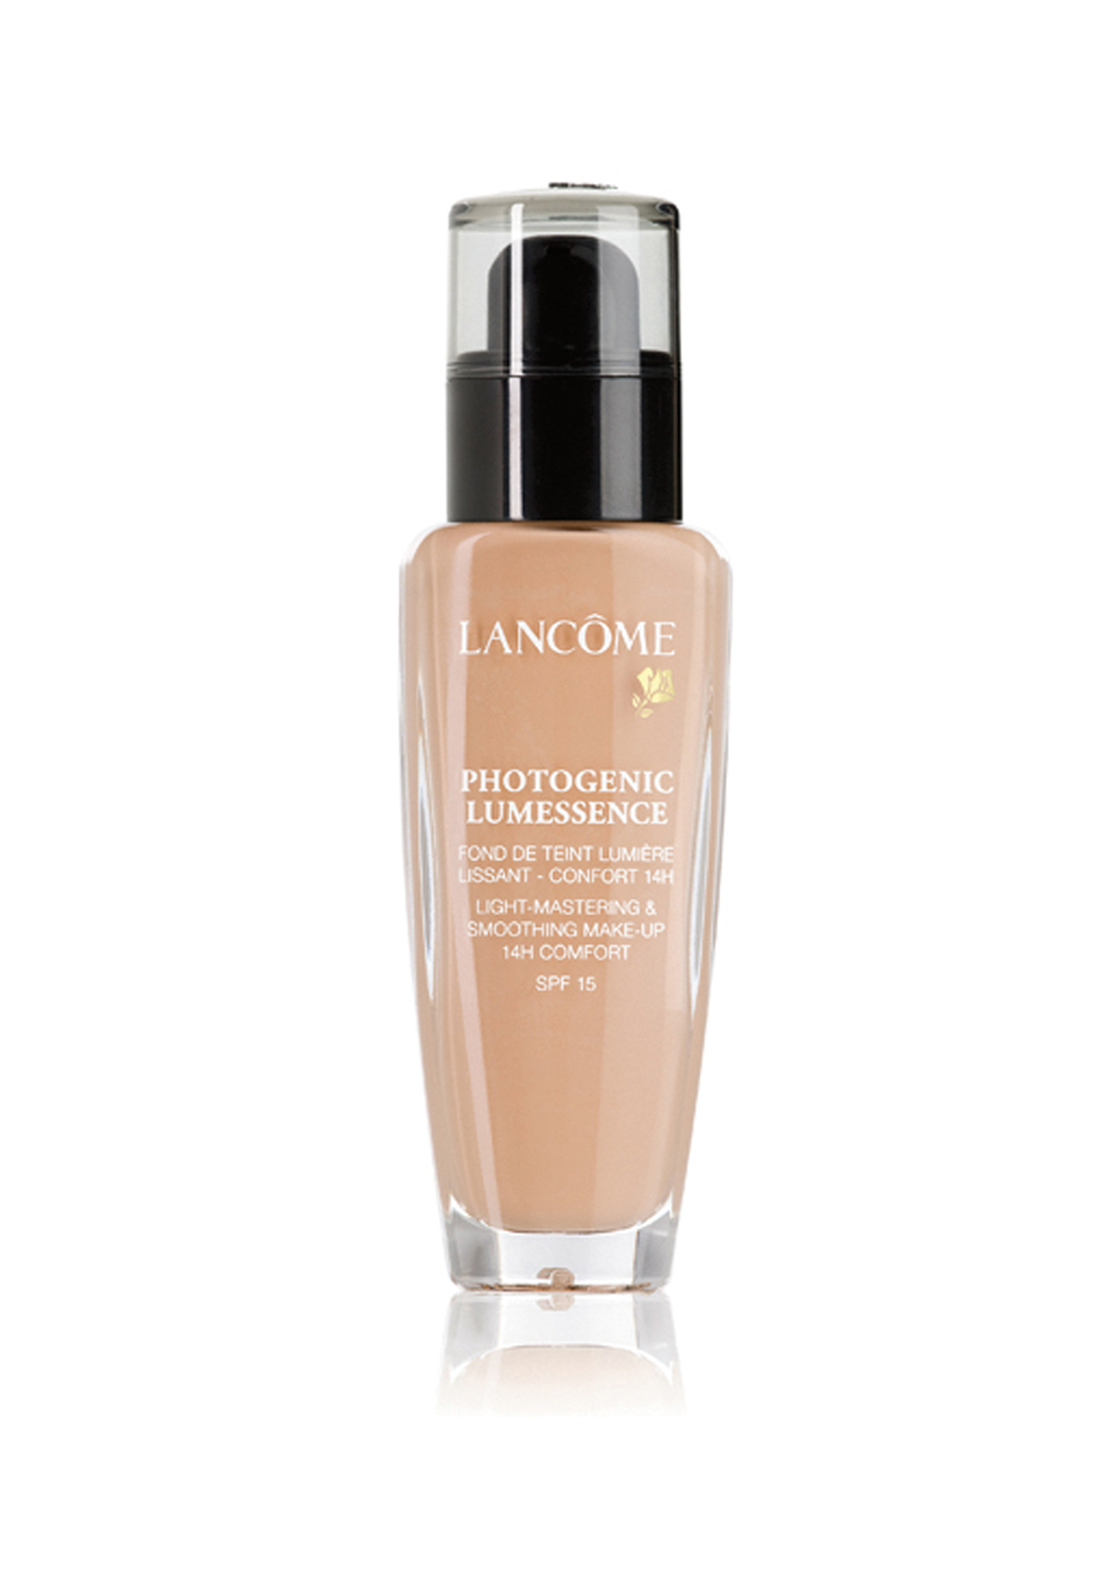 Lancome Photogenic Lumessence Liquid Foundation with SPF15, 01 Beige Albatre